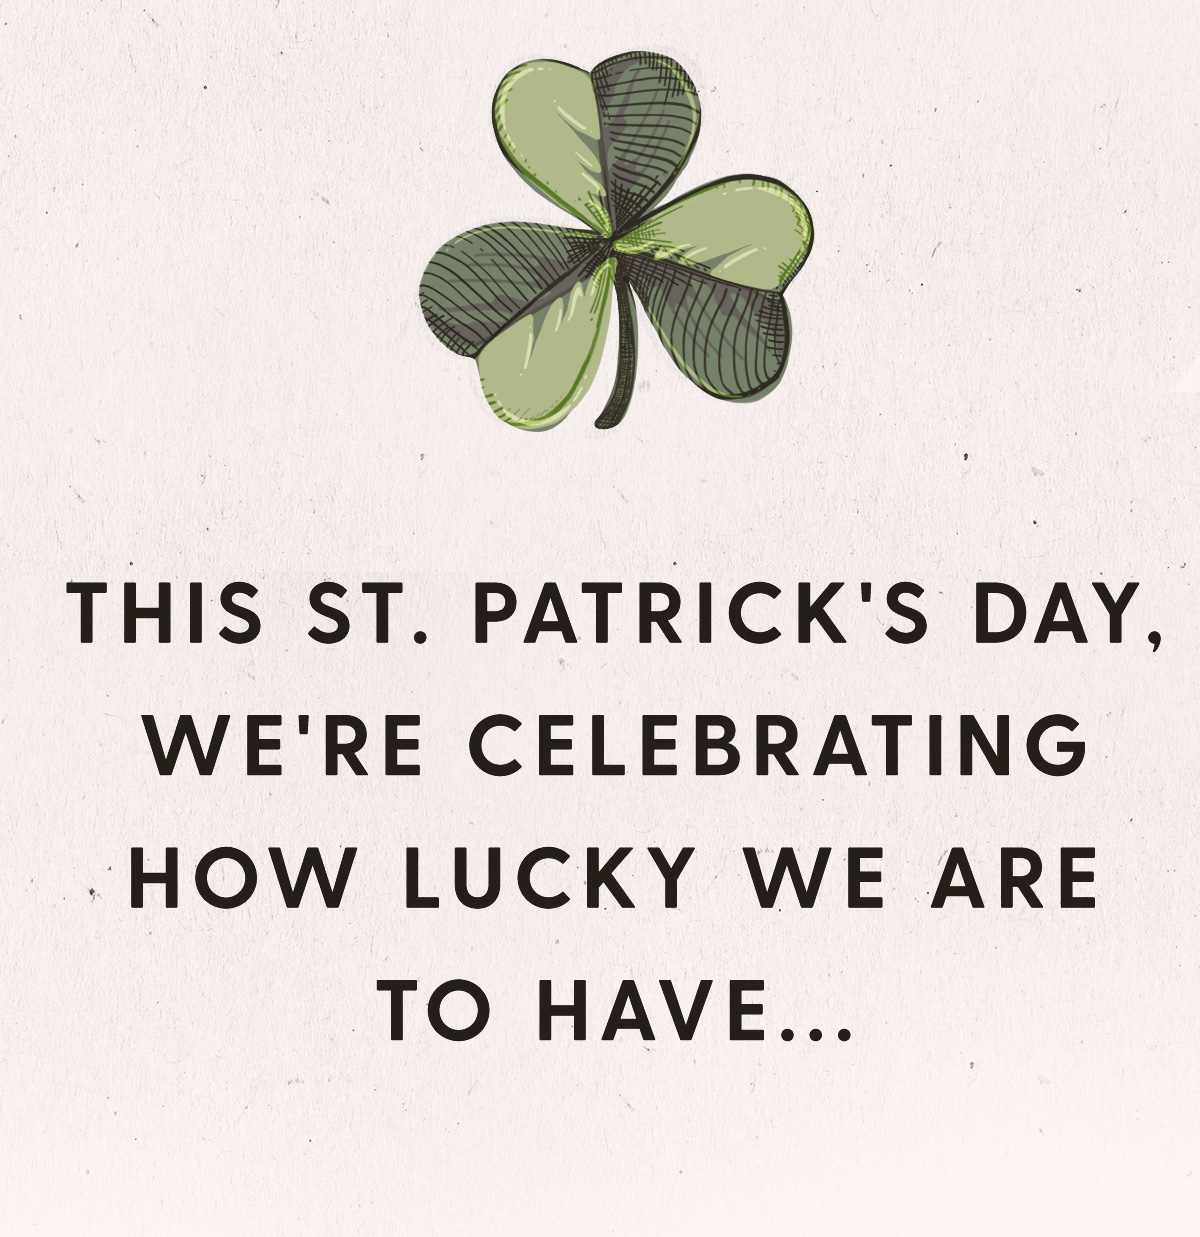 This St. Patrick's Day, we're celebrating how lucky we are to have...